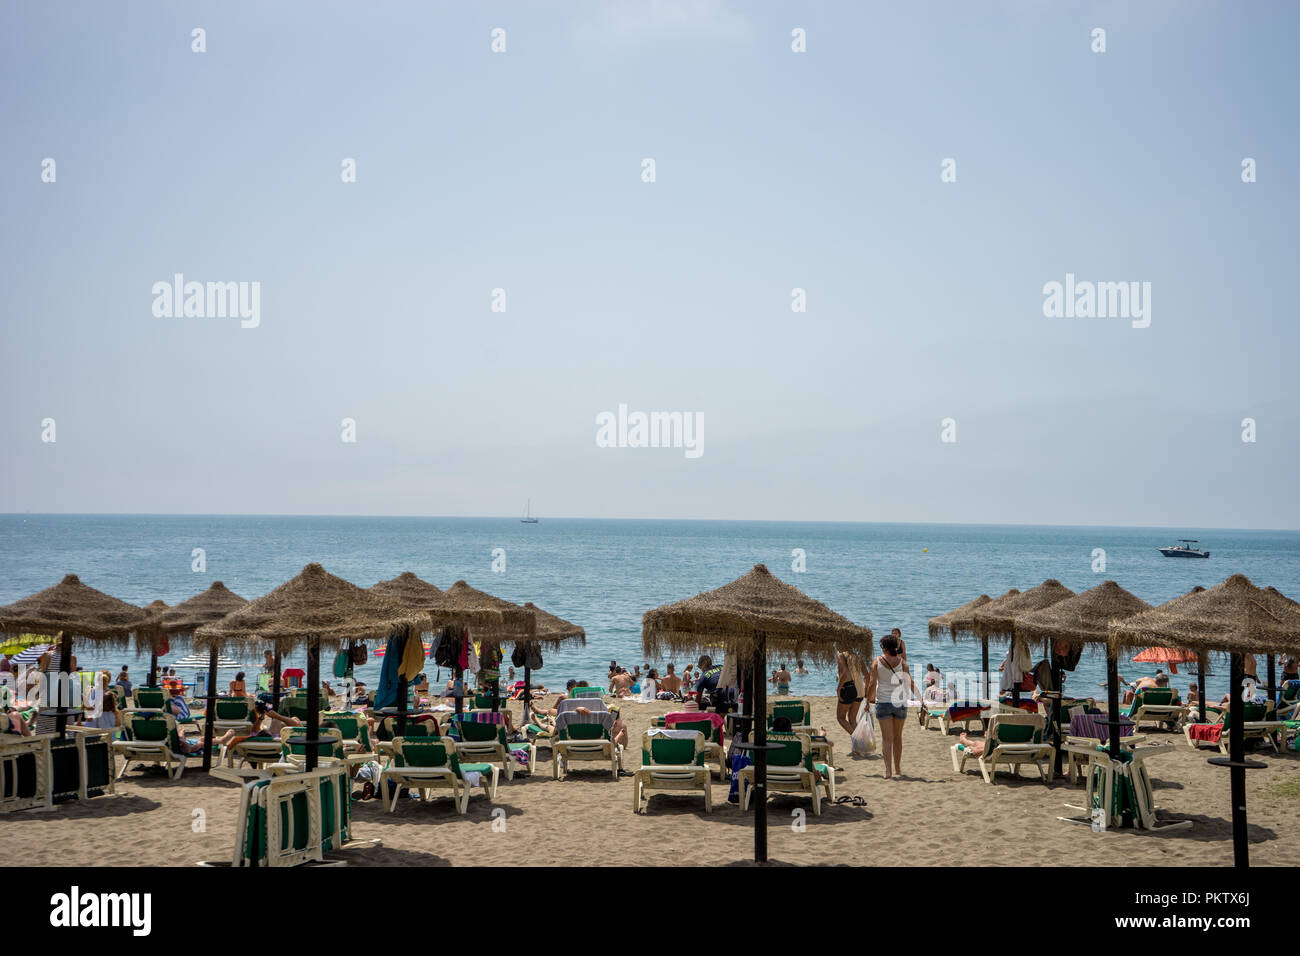 Malaga, Spain - June 24: The beach with huts at Malaga, Spain. This beach was part of the land reclaimed from the Malaga sea Stock Photo